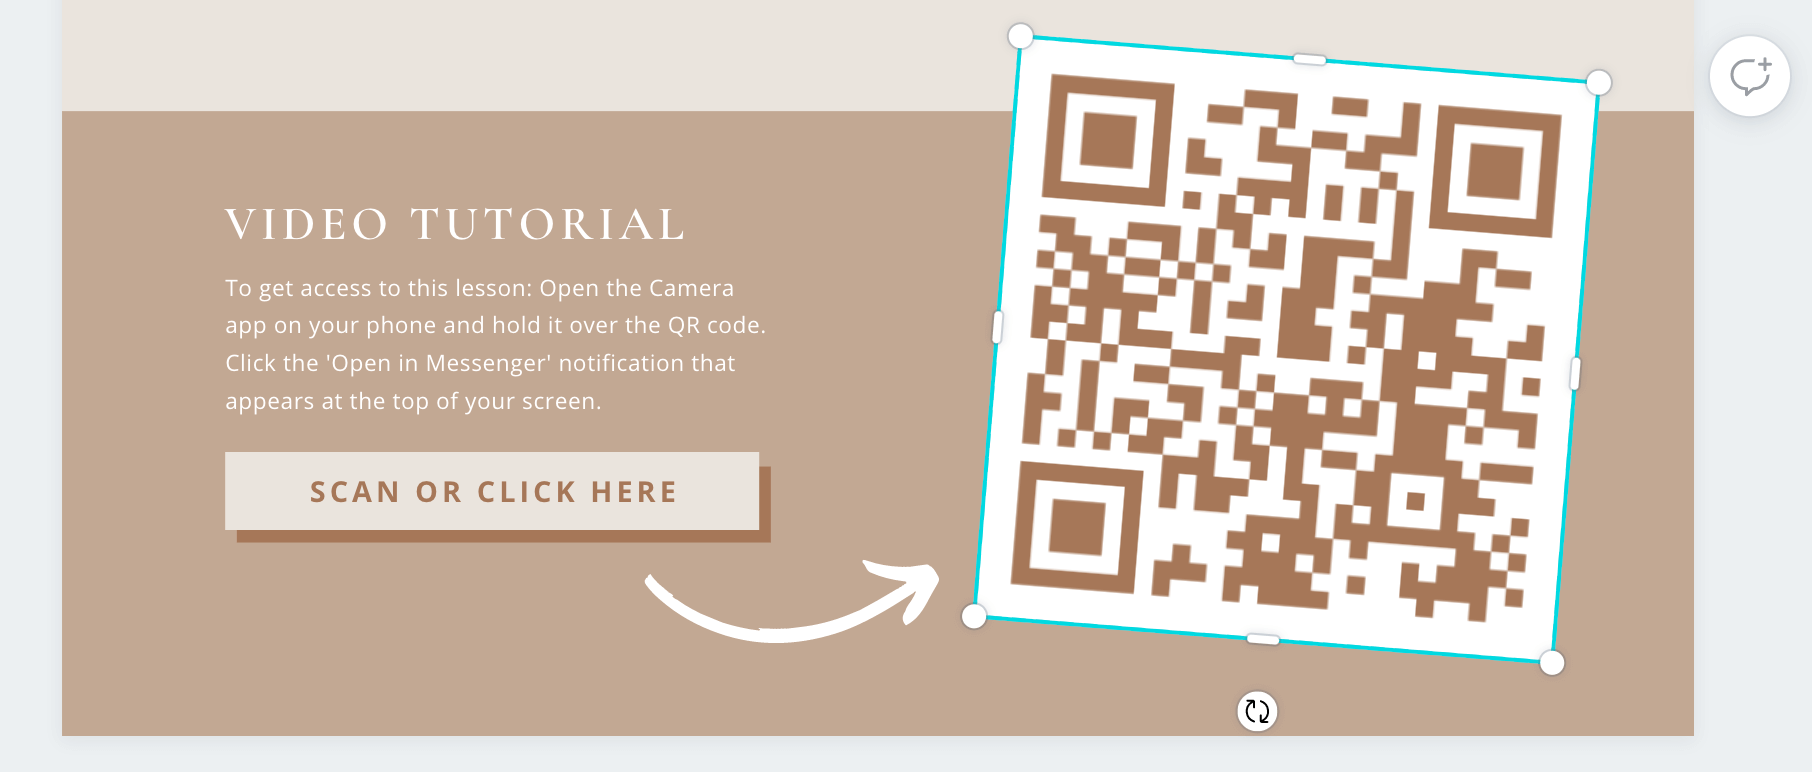 How to use QR codes in your digital products to turn subscribers into buyers! Learn to easily design with QR codes to boost conversion rates!